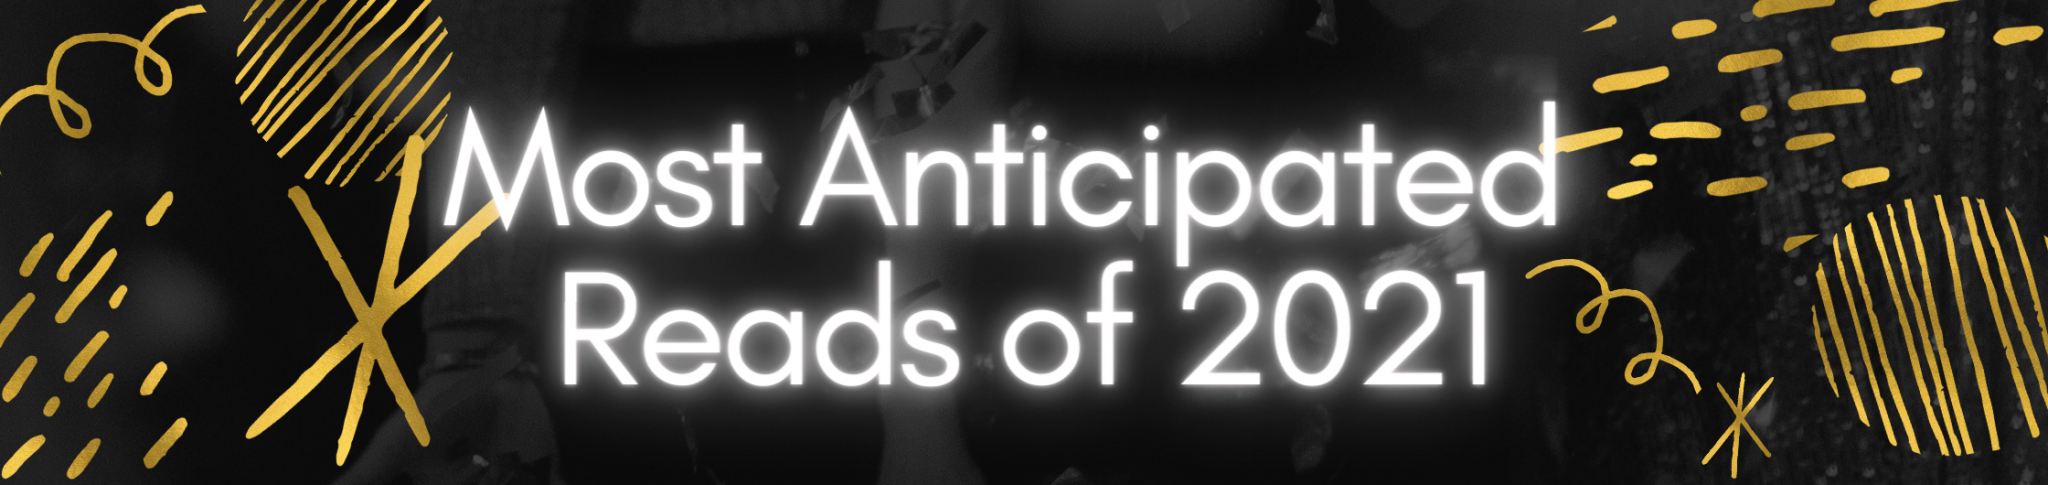 most anticipated reads of 2021